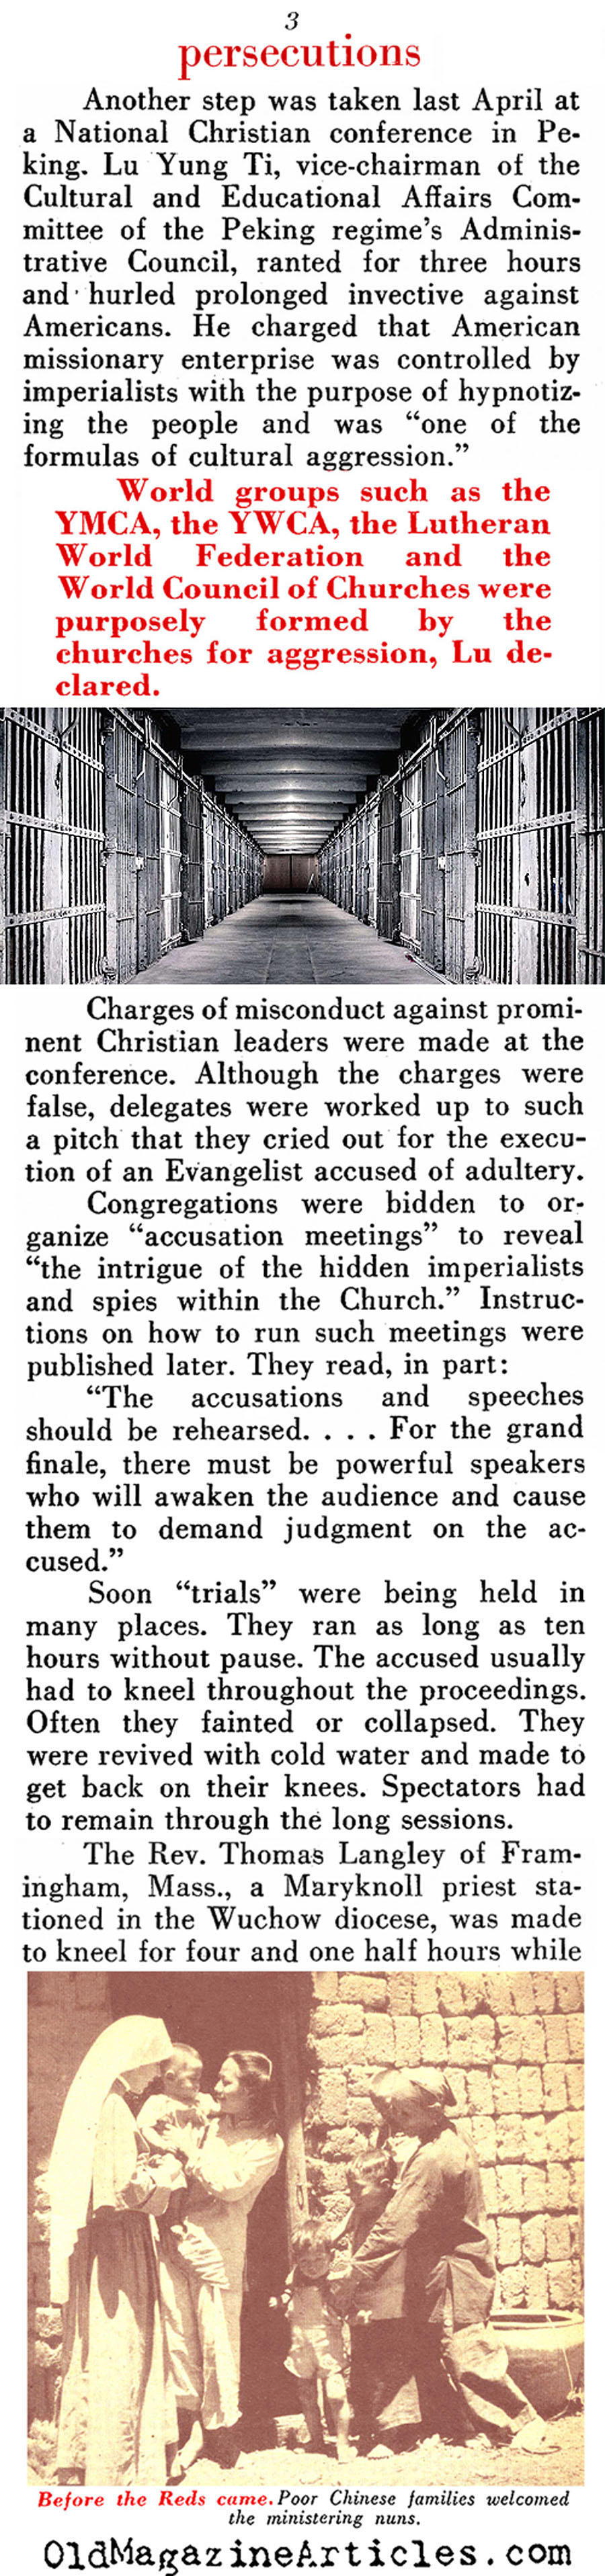 The Persecution of the Christians (Pathfinder Magazine, 1952)